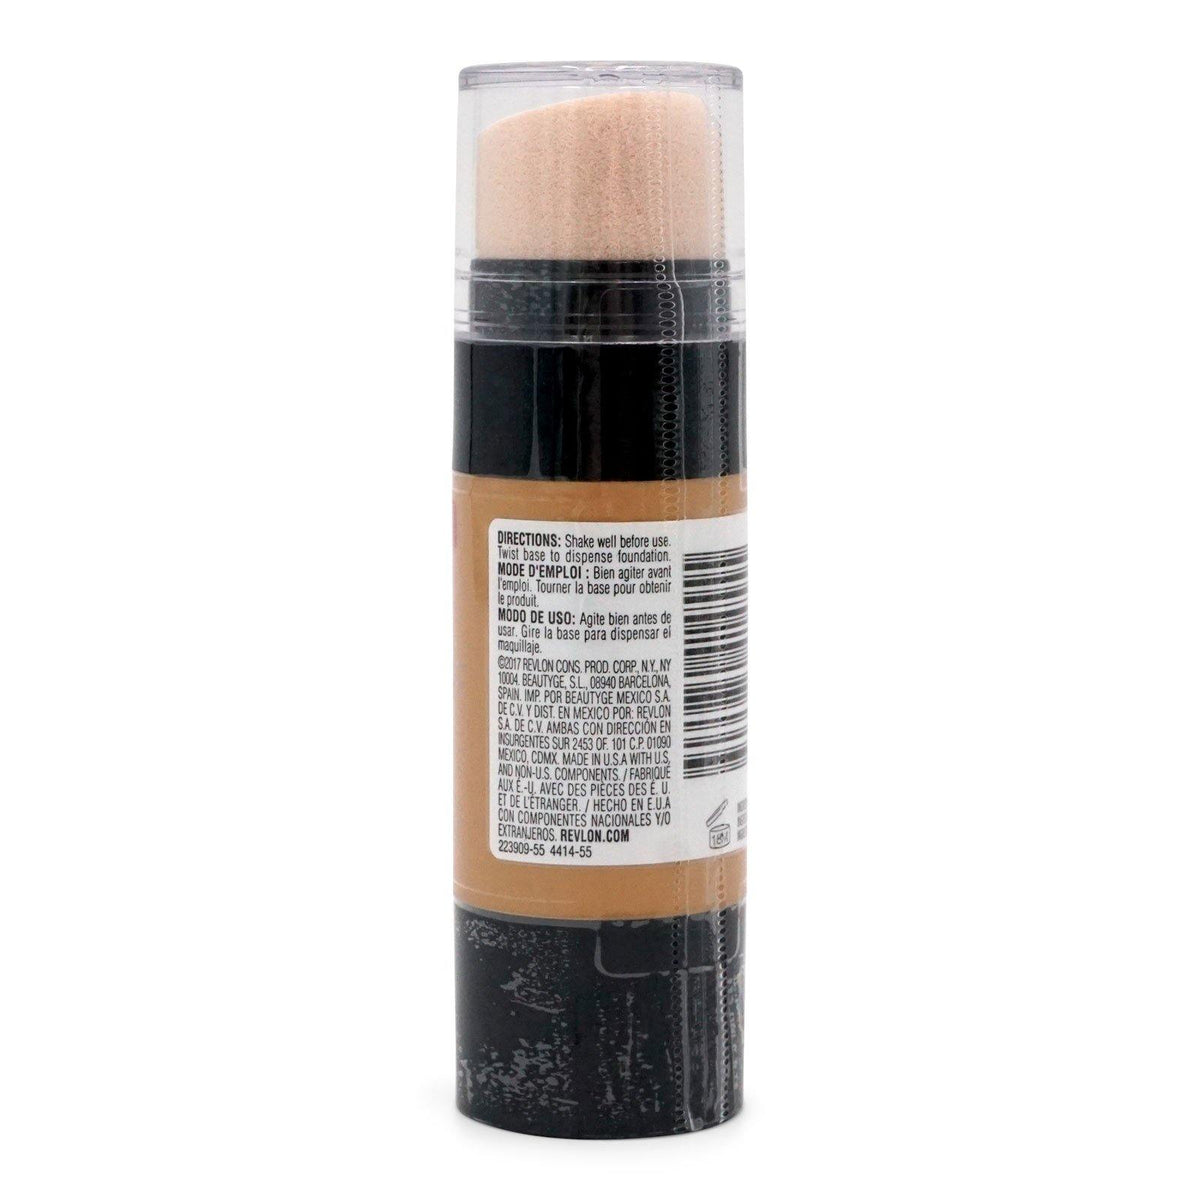 Revlon Photoready Instafix Smart Filter Foundation, Natural Tan (24/cs)